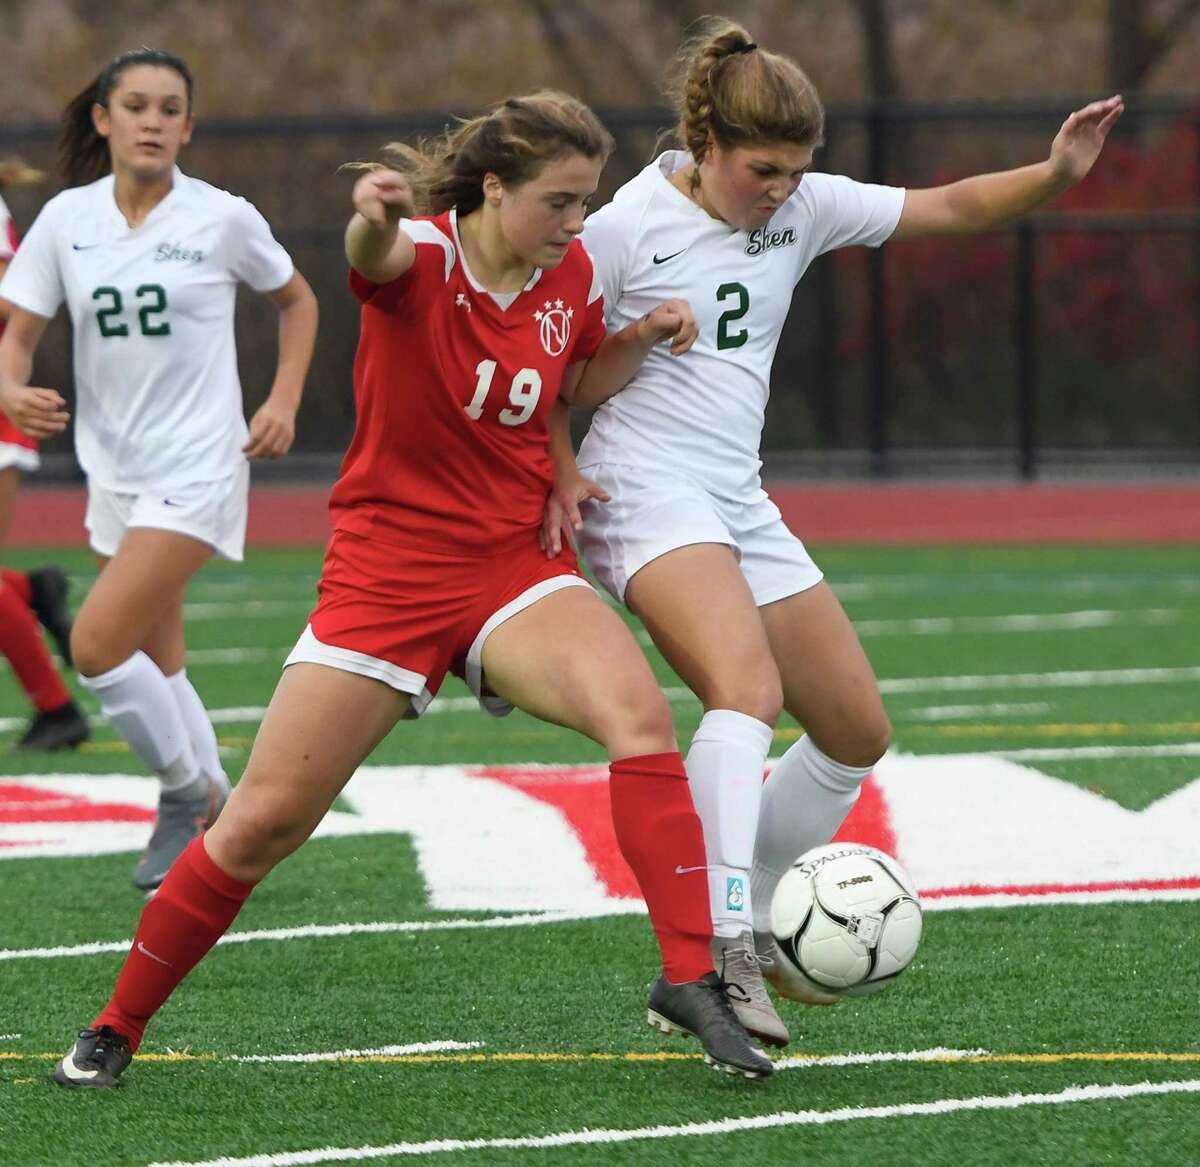 Niskayuna's Mikayla Bechtel and Shenendehowa's Ava Caputo pursue the ball during their Class AA semifinal match on Wednesday, Oct. 30, 2019, in Mechanicville, N.Y. (Jenn March, Special to the Times Union)